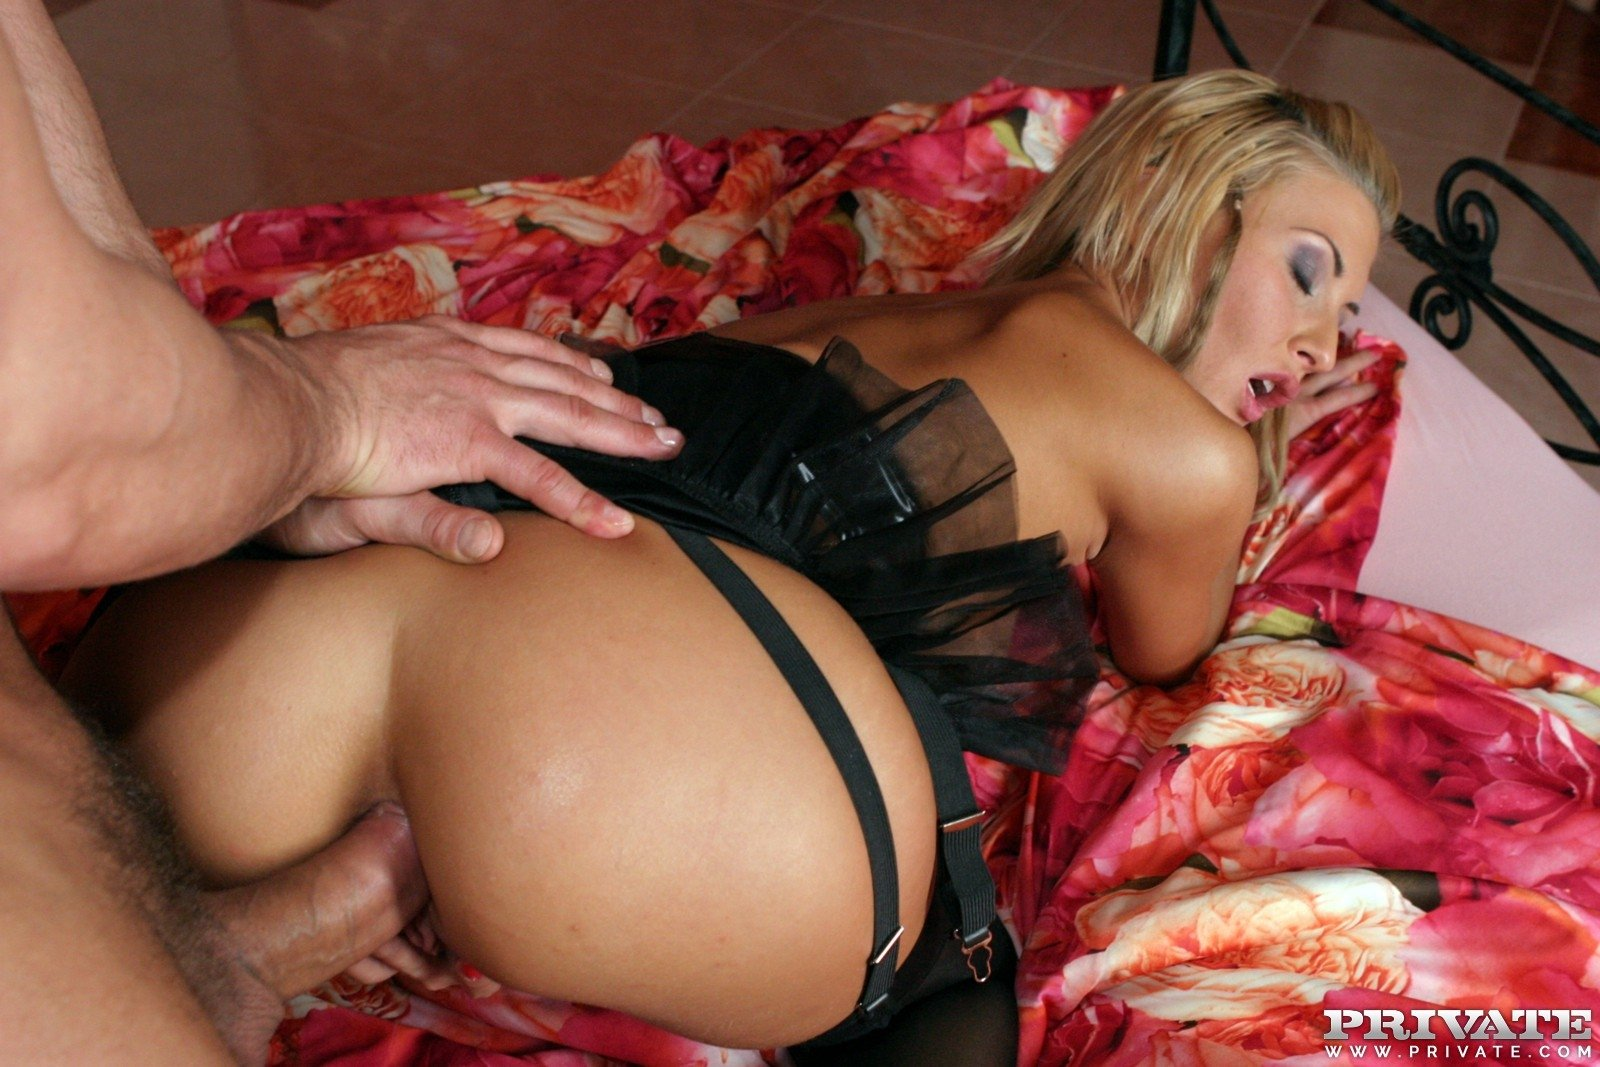 Hot MILF loves to ride a black monster 19